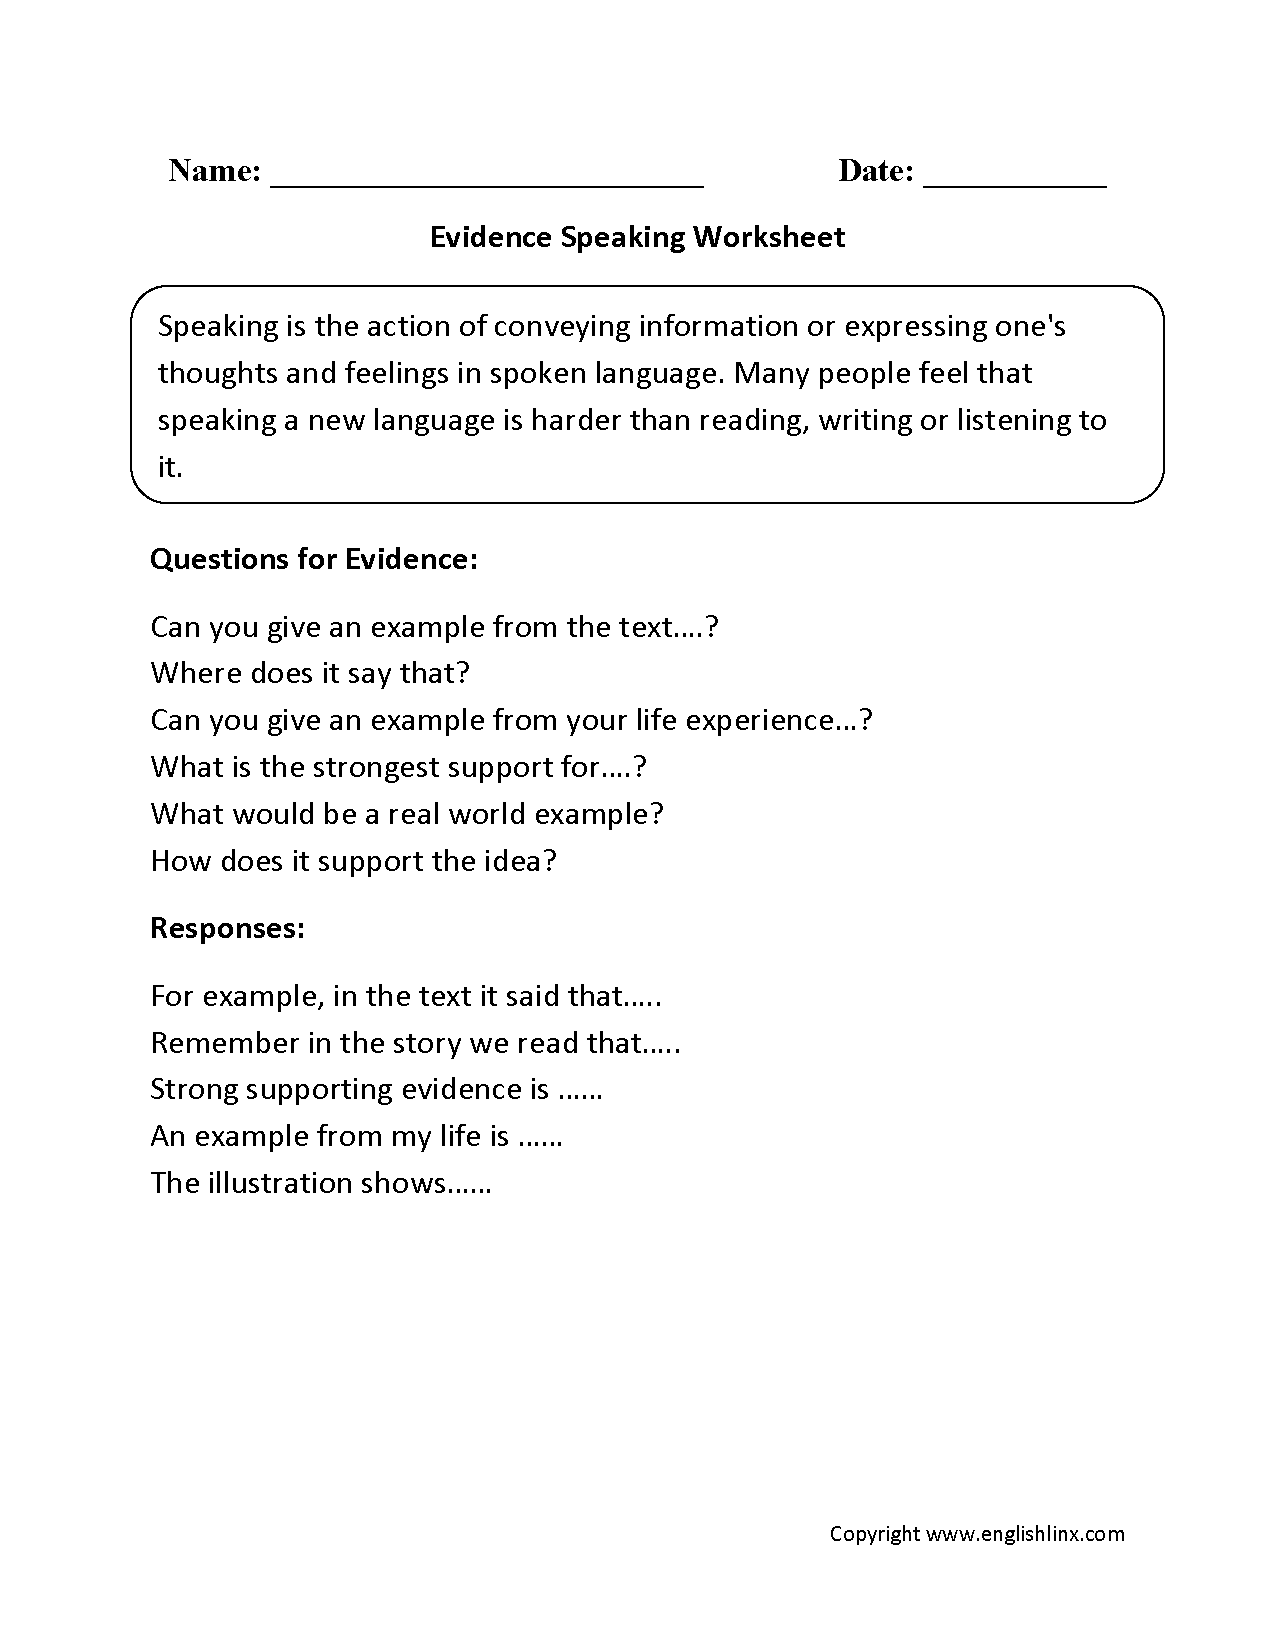 Evidence Speaking Worksheets